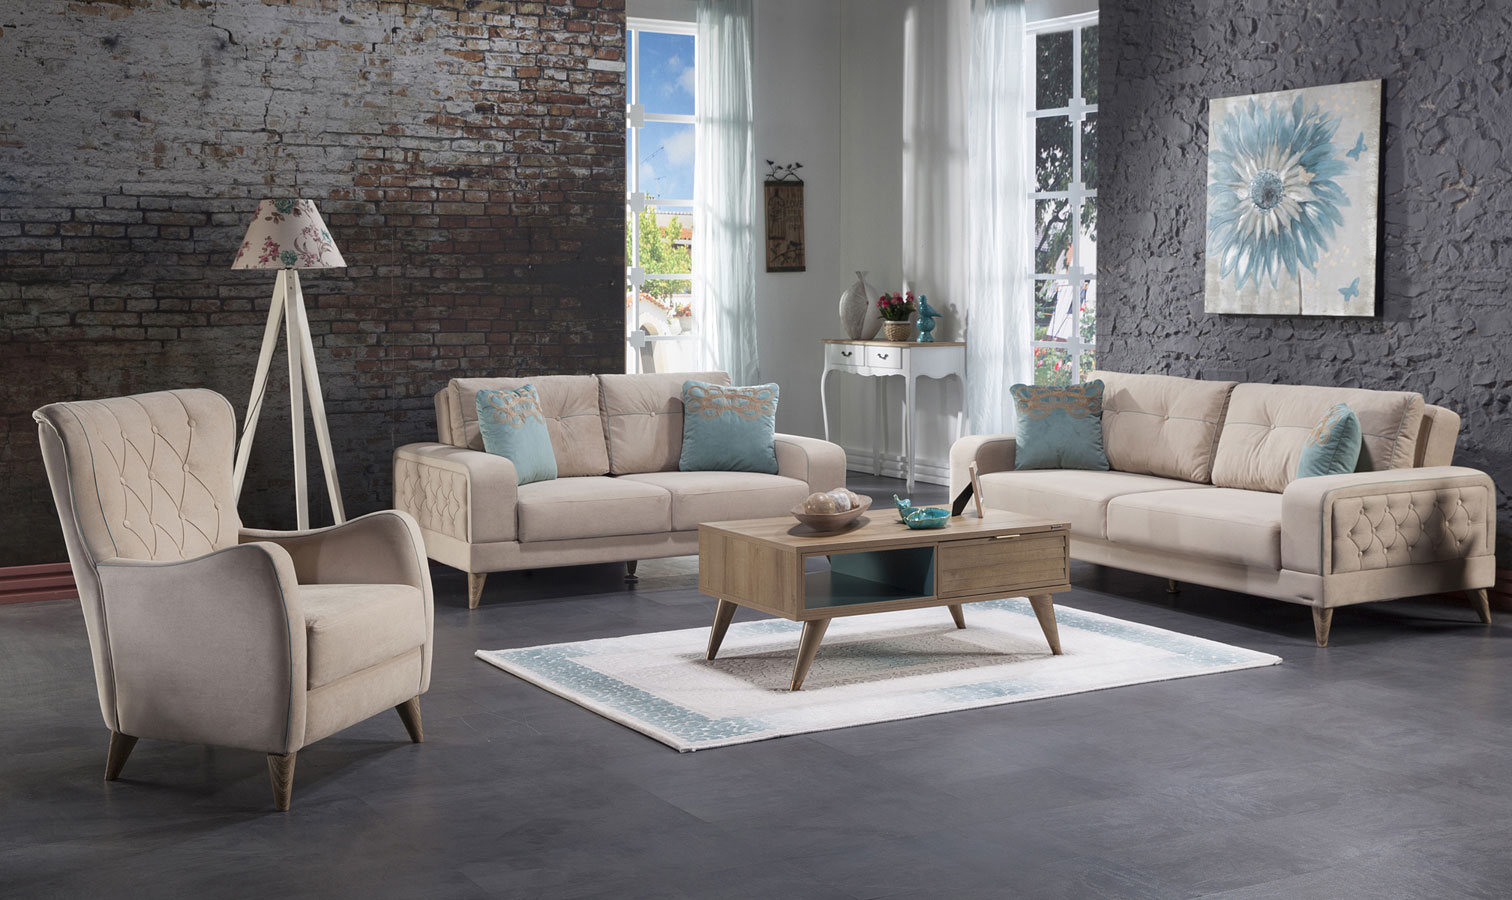 Vienza Living Room Set Lilyum Cream pertaining to 13 Smart Concepts of How to Make Istikbal Living Room Sets